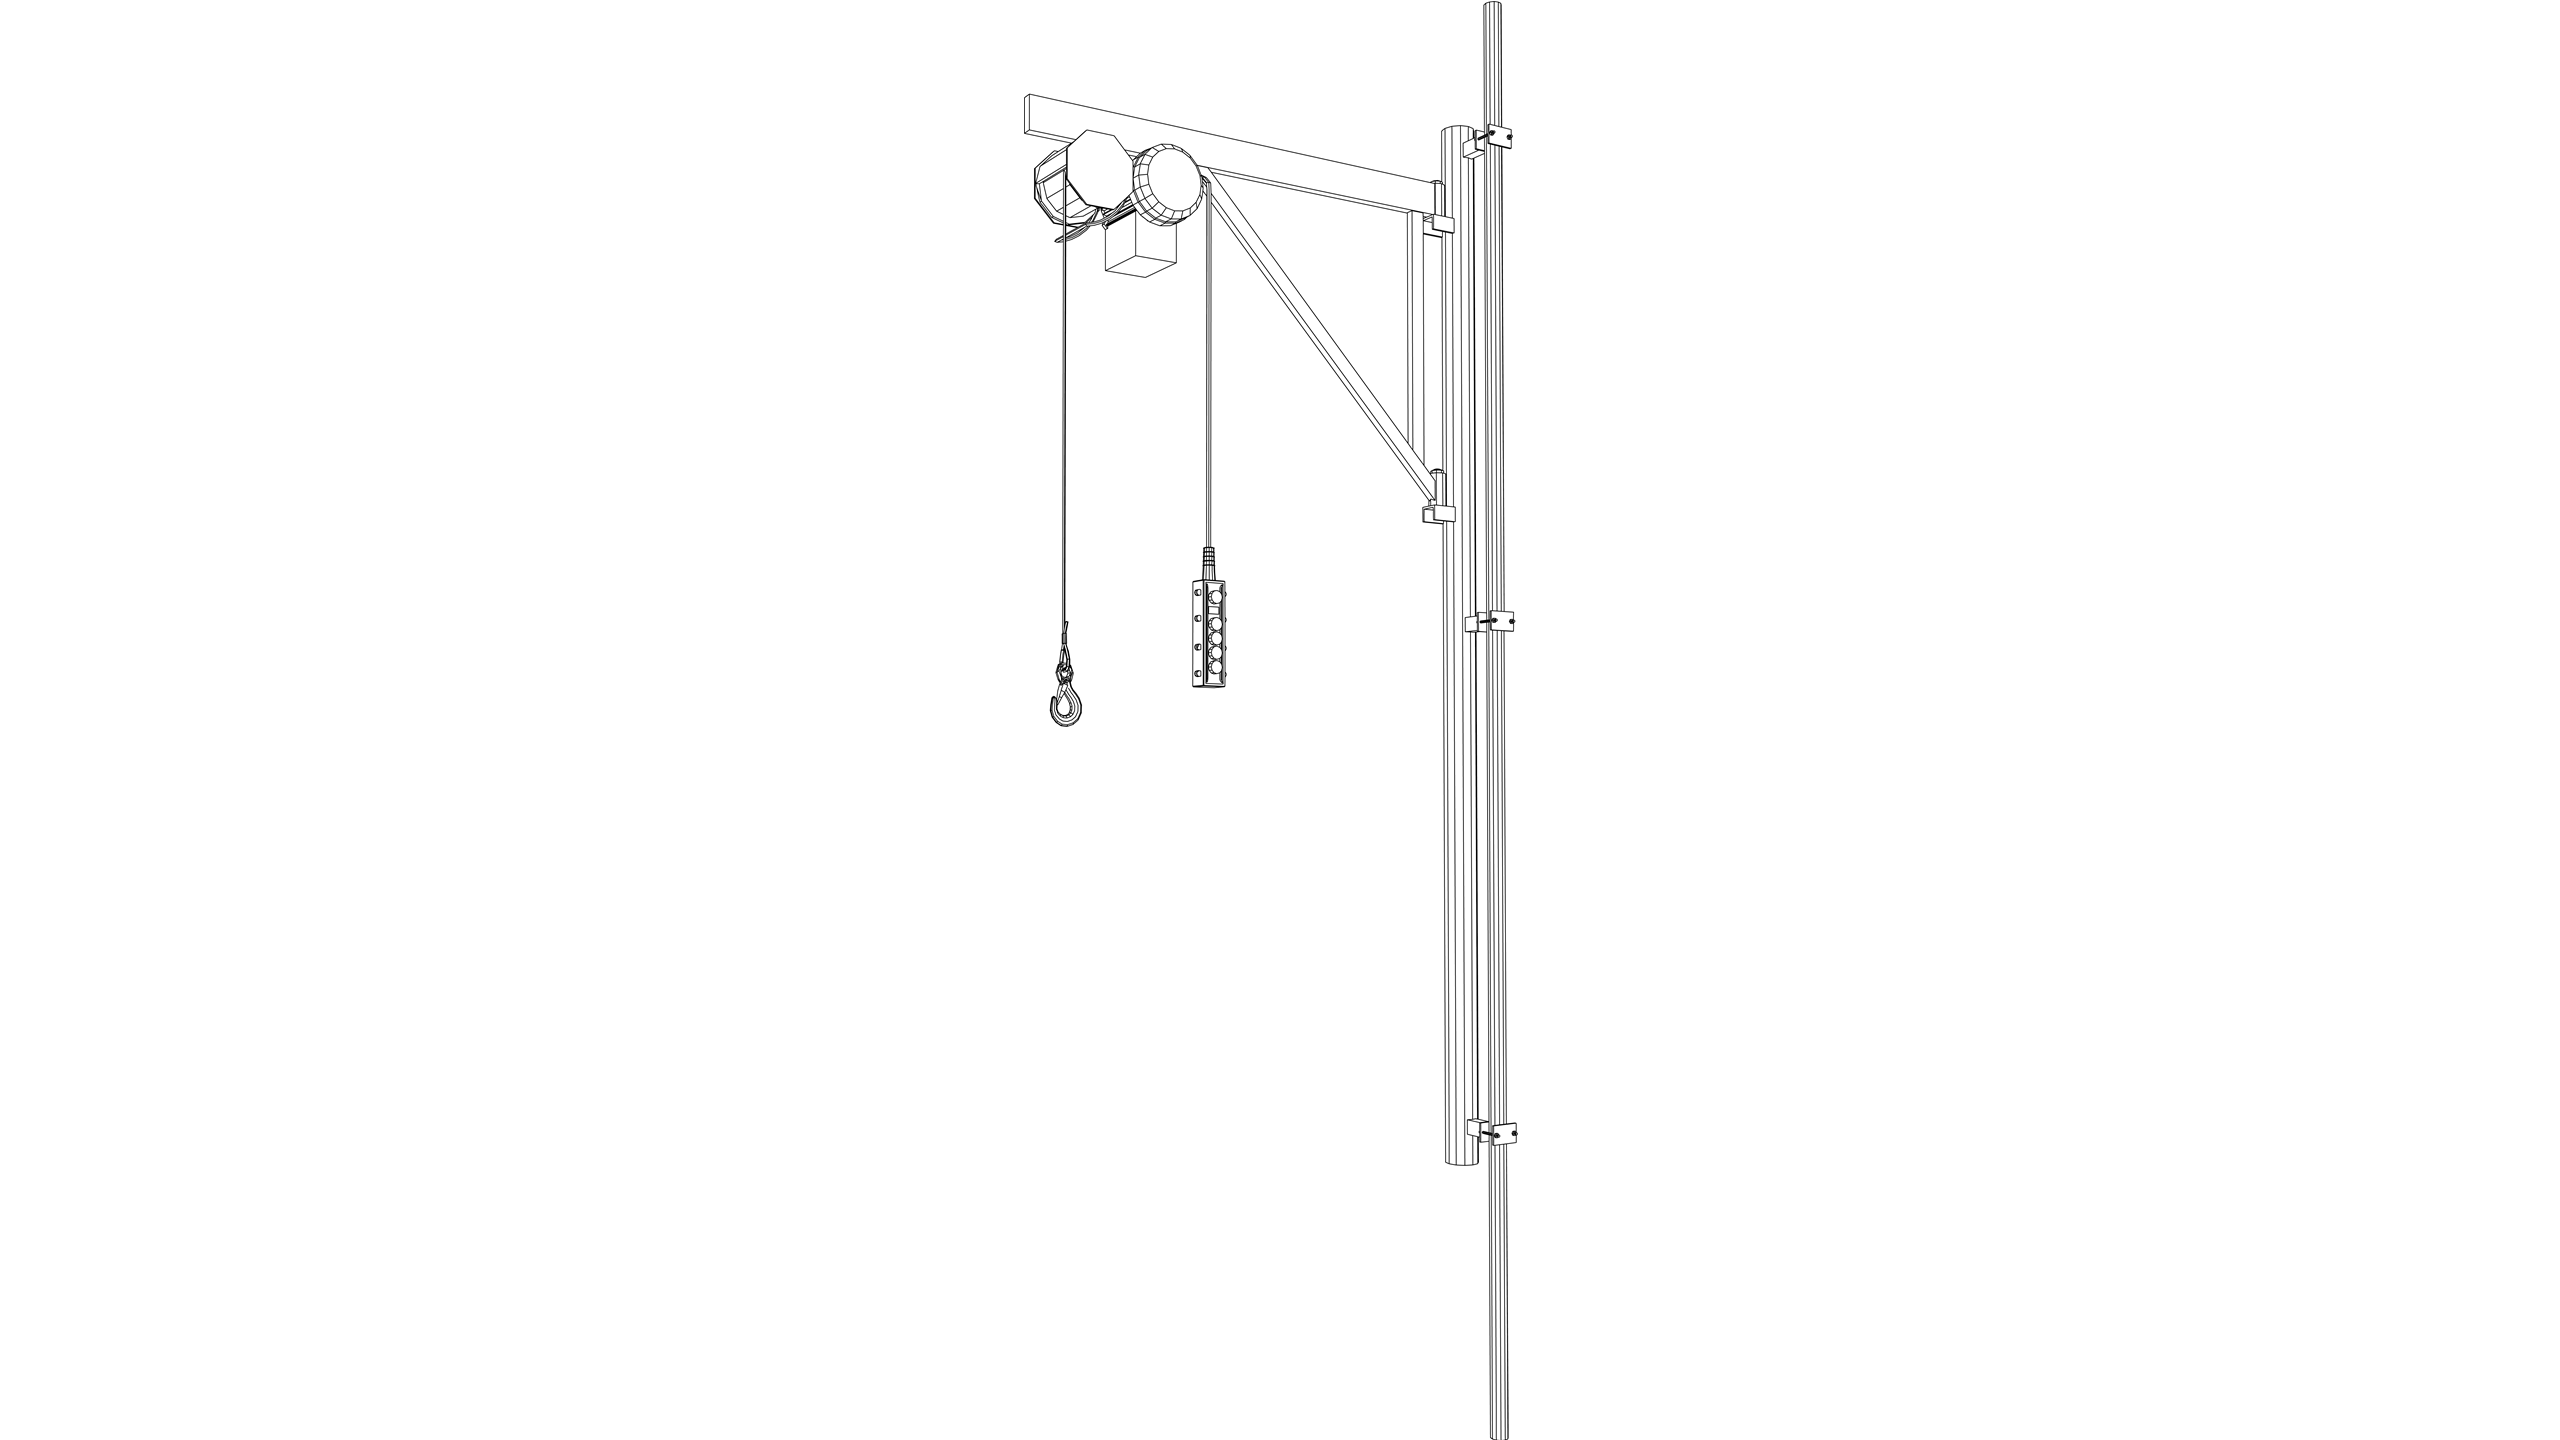 Vector Image: Scaffold Jib Crane